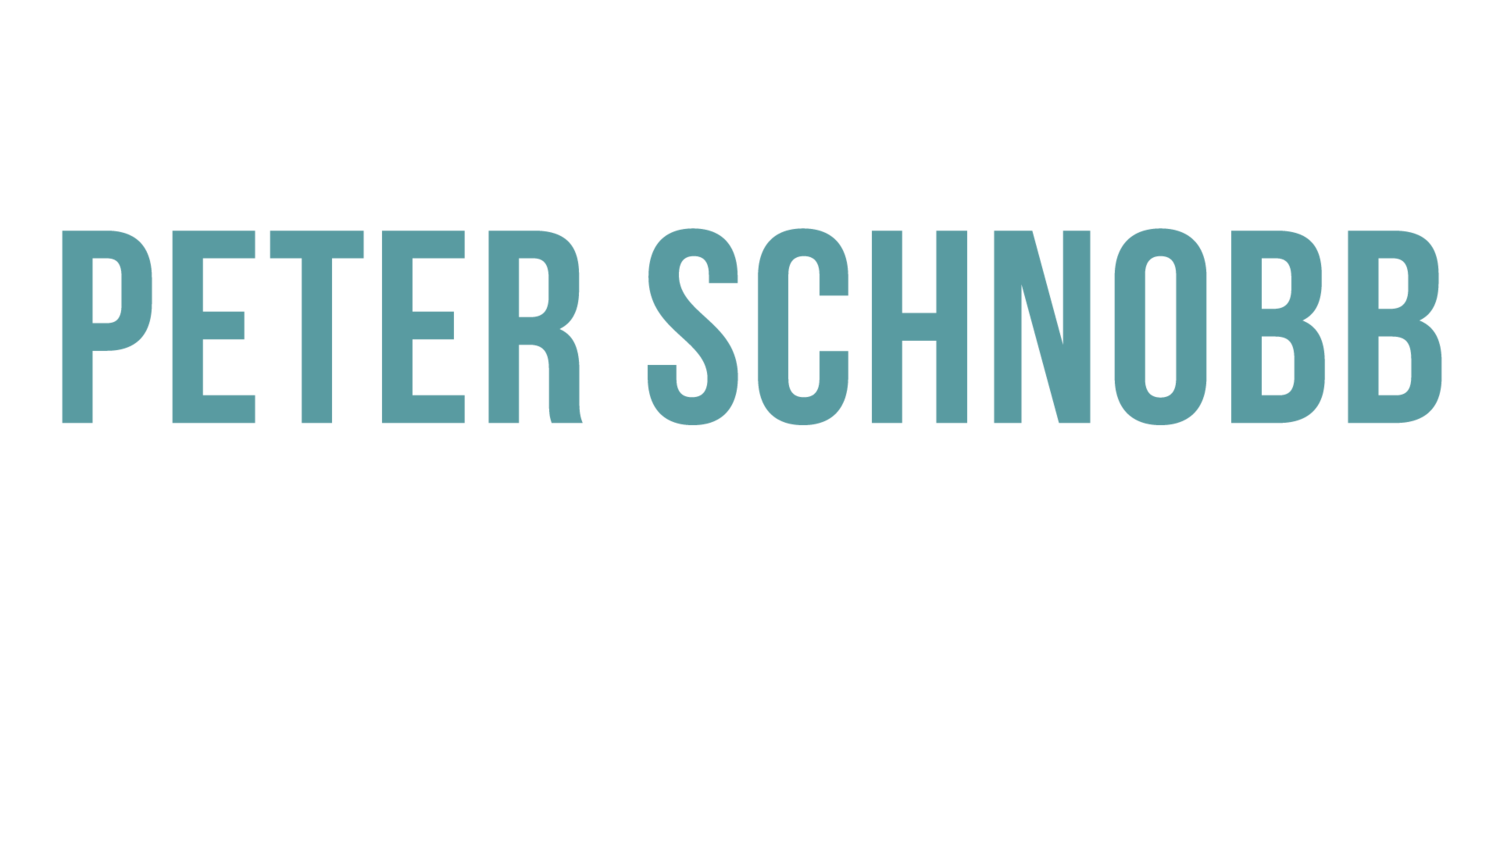 Peter Schnobb CINEMATOGRAPHER